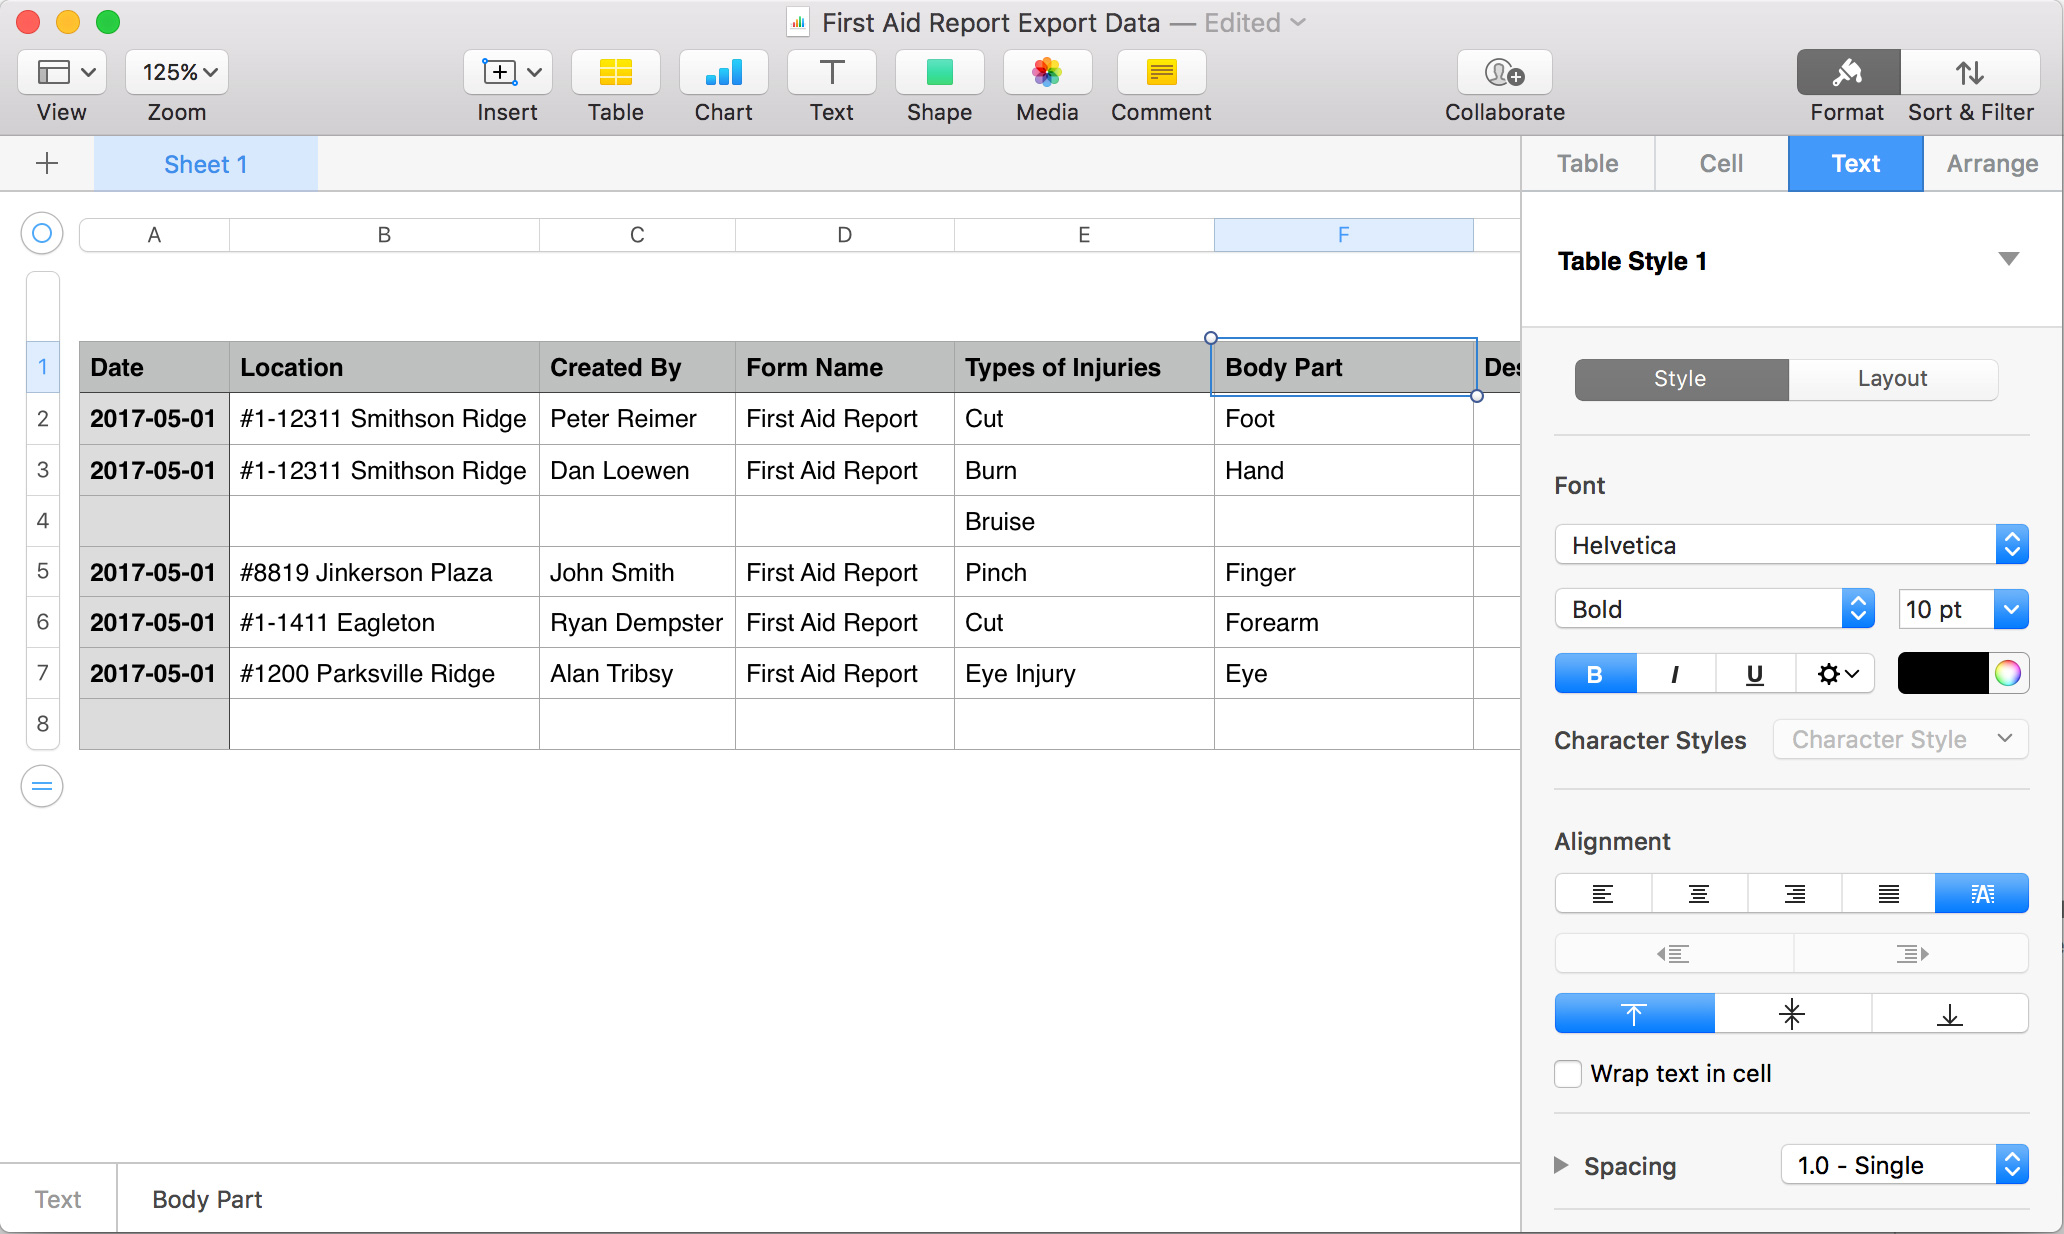 Spreadsheet Layout In Understanding Spreadsheet Layout – Sitedocs Help Center